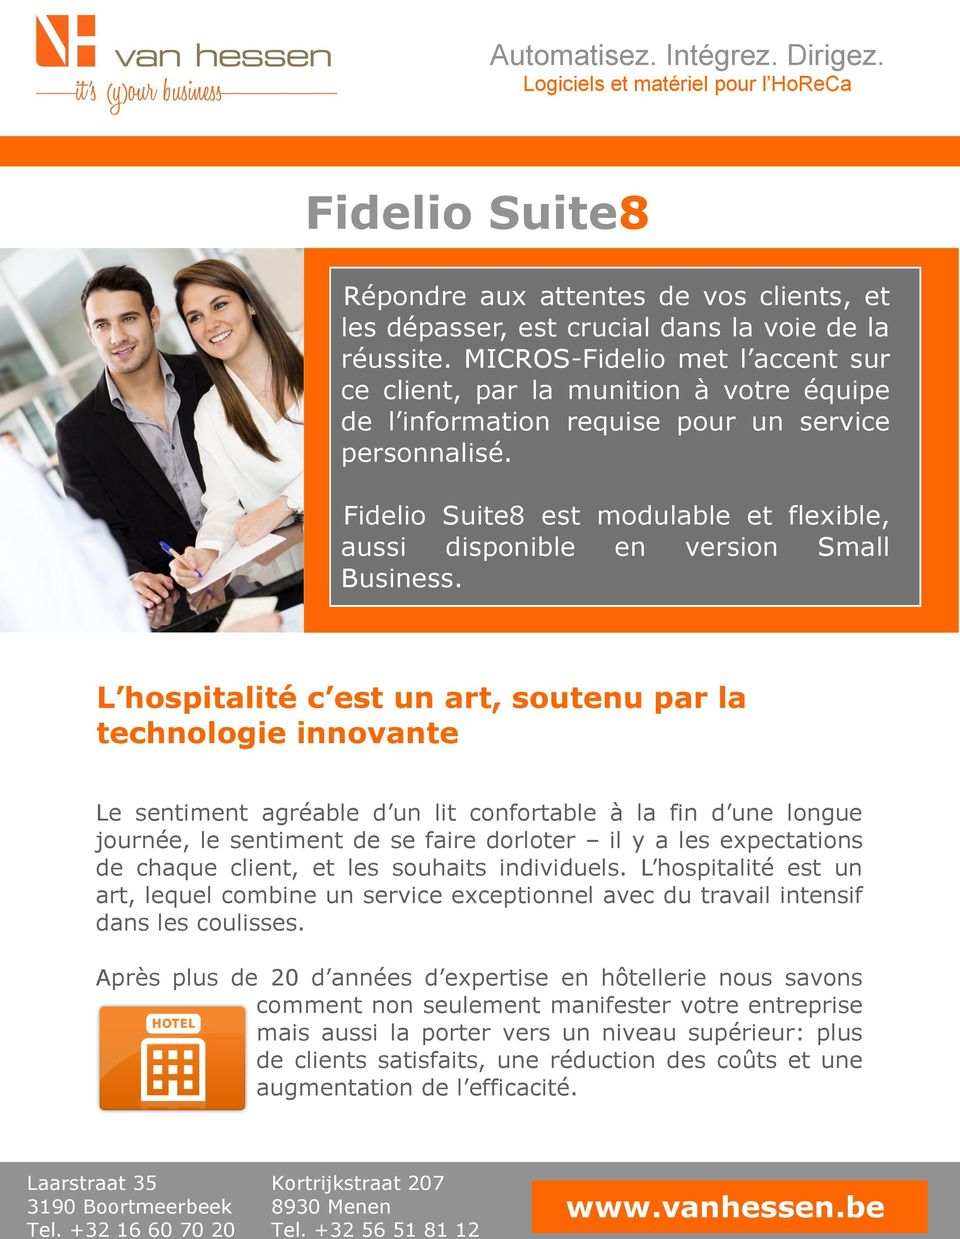 Fidelio Suite8 est modulable et flexible, aussi disponible en version Small Business.